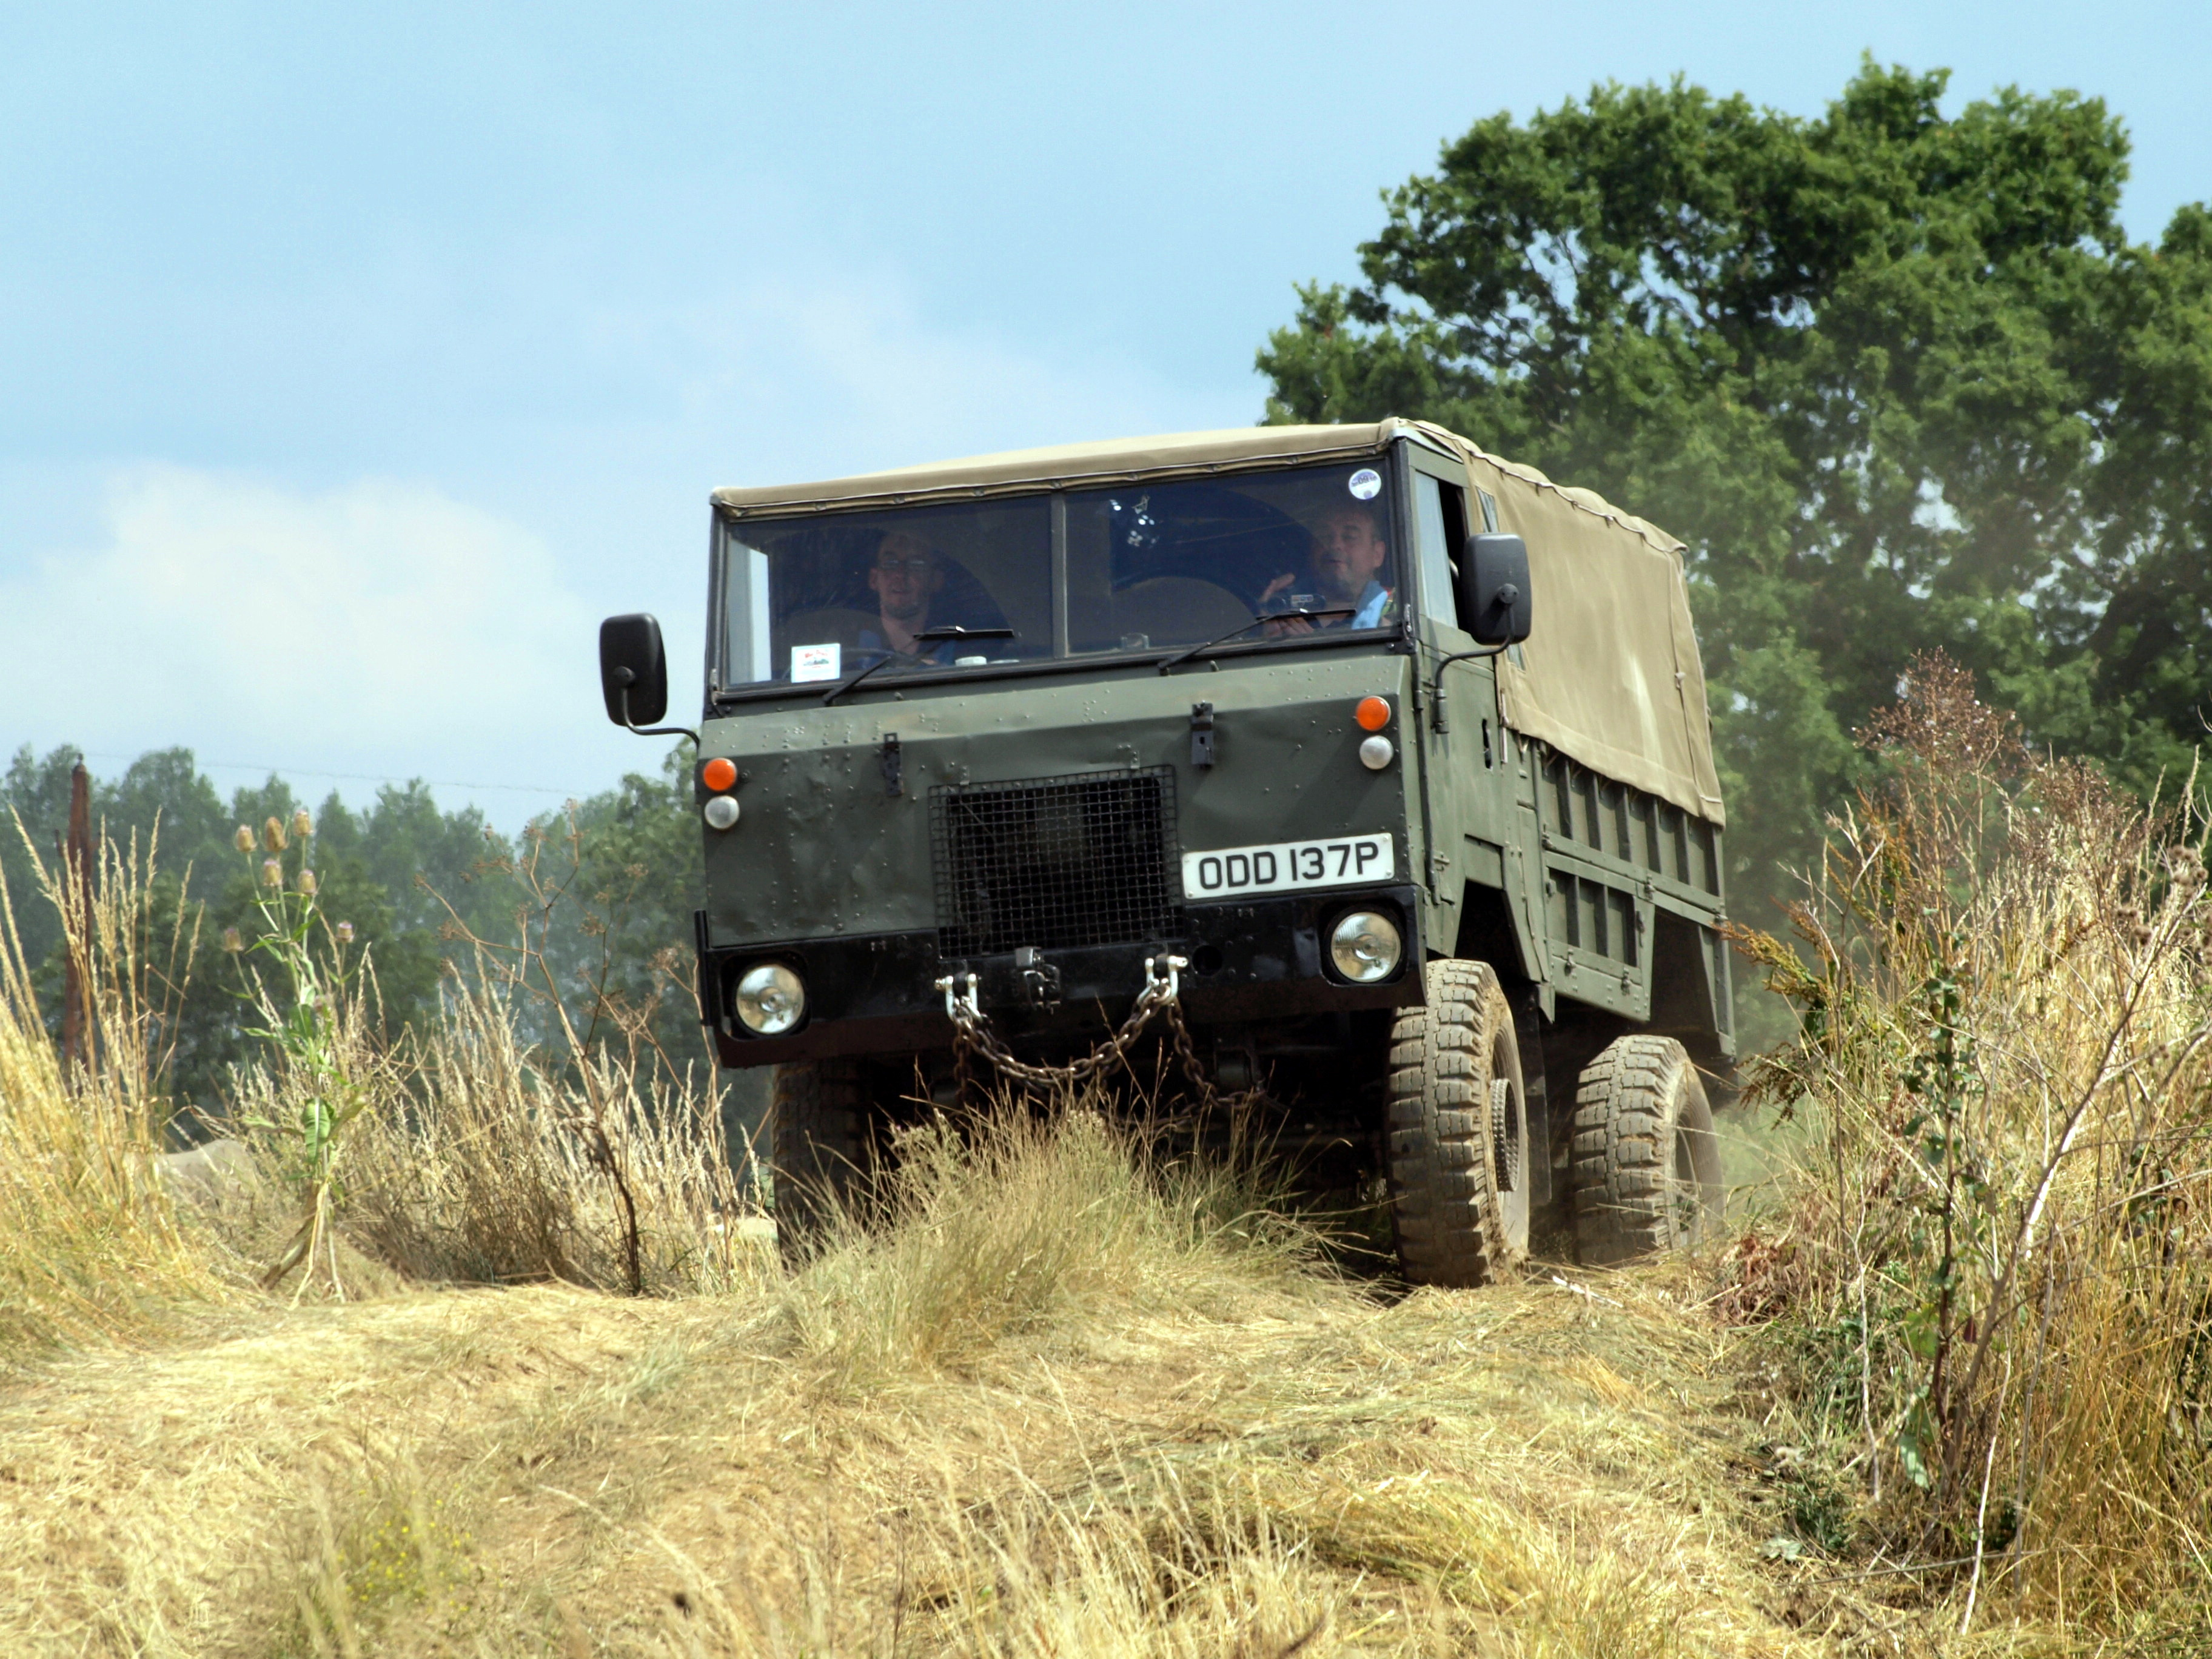 File:Land Rover 101 Forward Control pic21.JPG - Wikimedia Commons